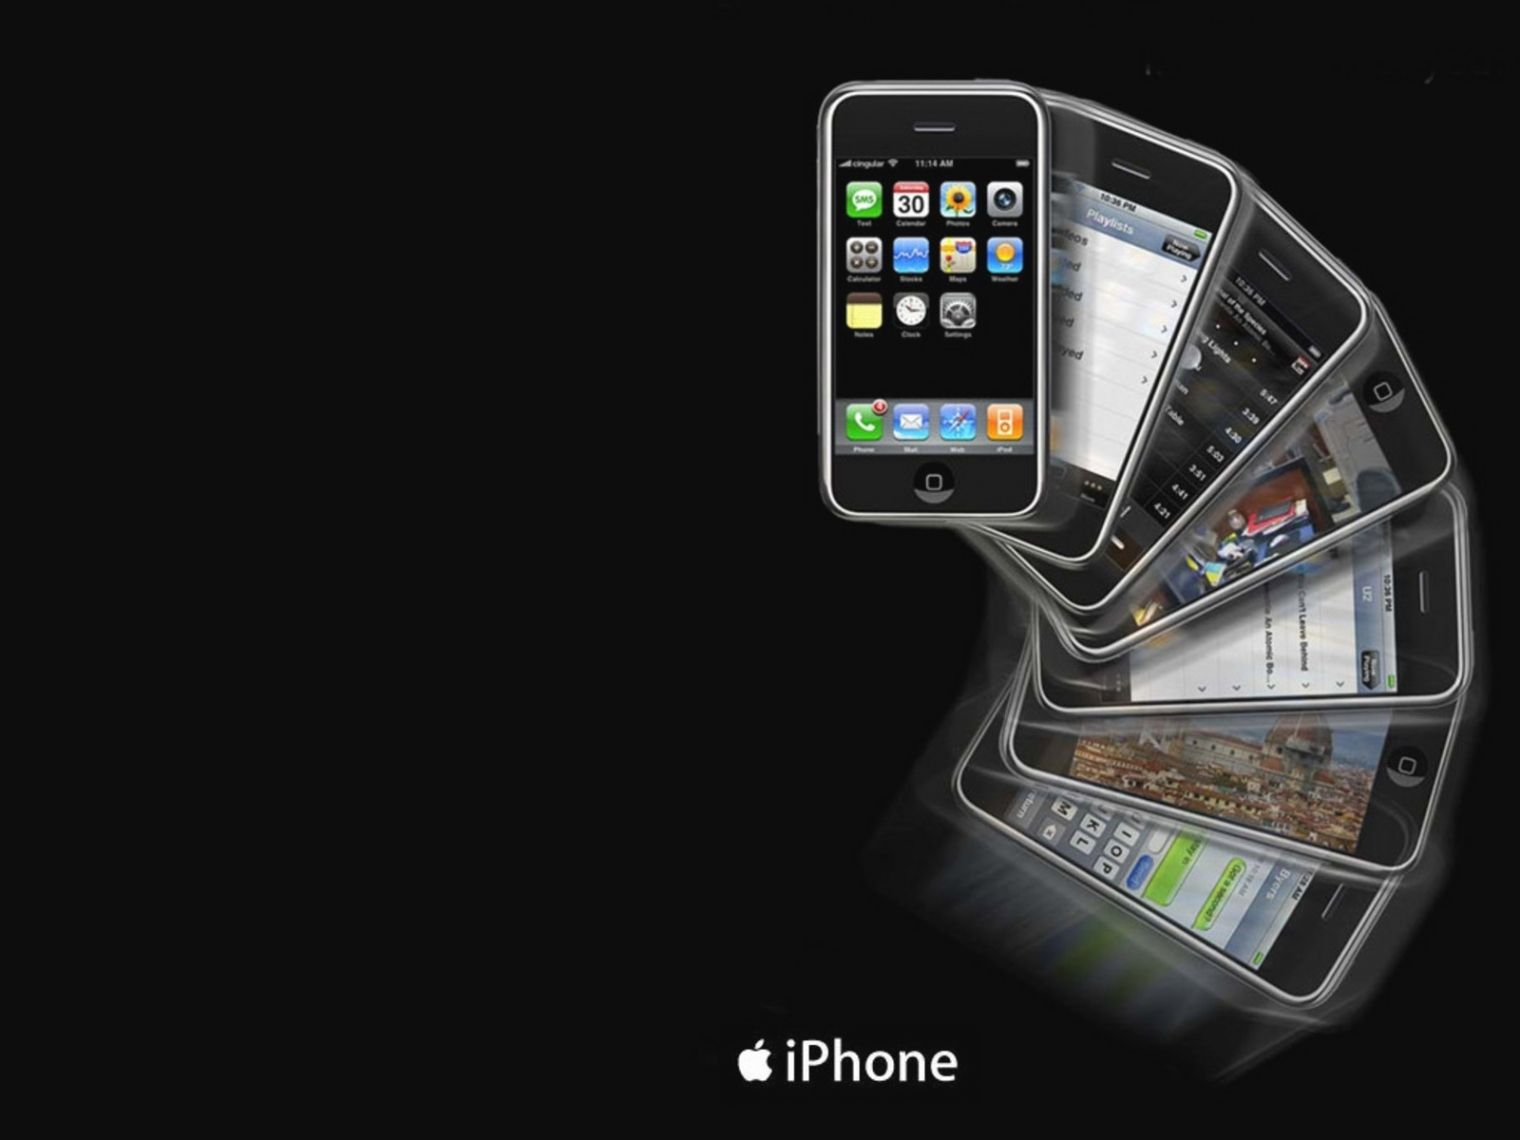 Iphone 3Gs Wallpaper Hd   Zoom Wallpapers for Iphone Wallpaper   Best Games Wallpapers   Iphone ...